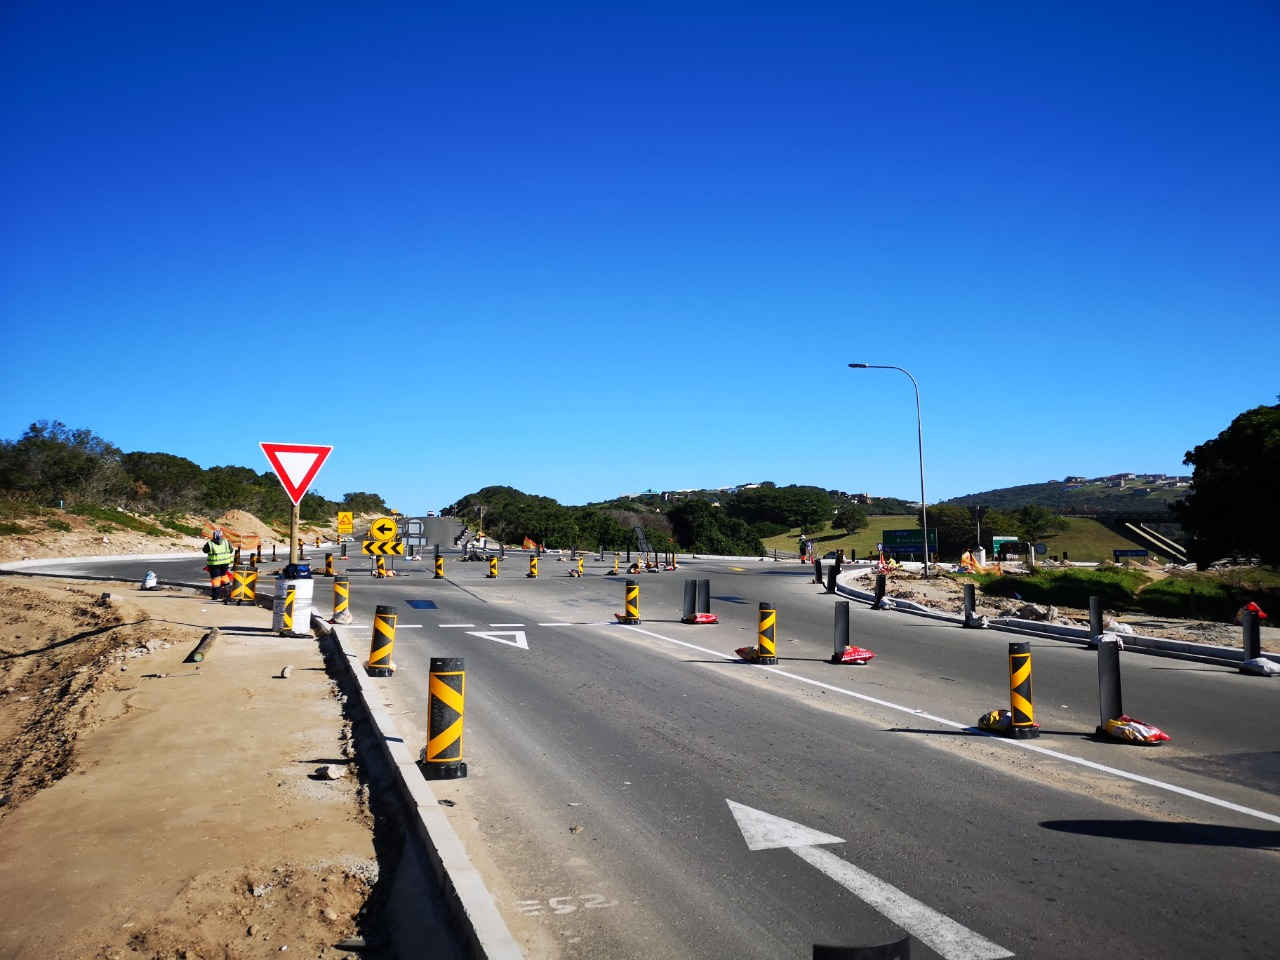 Comercial Goverment Paving Contracting